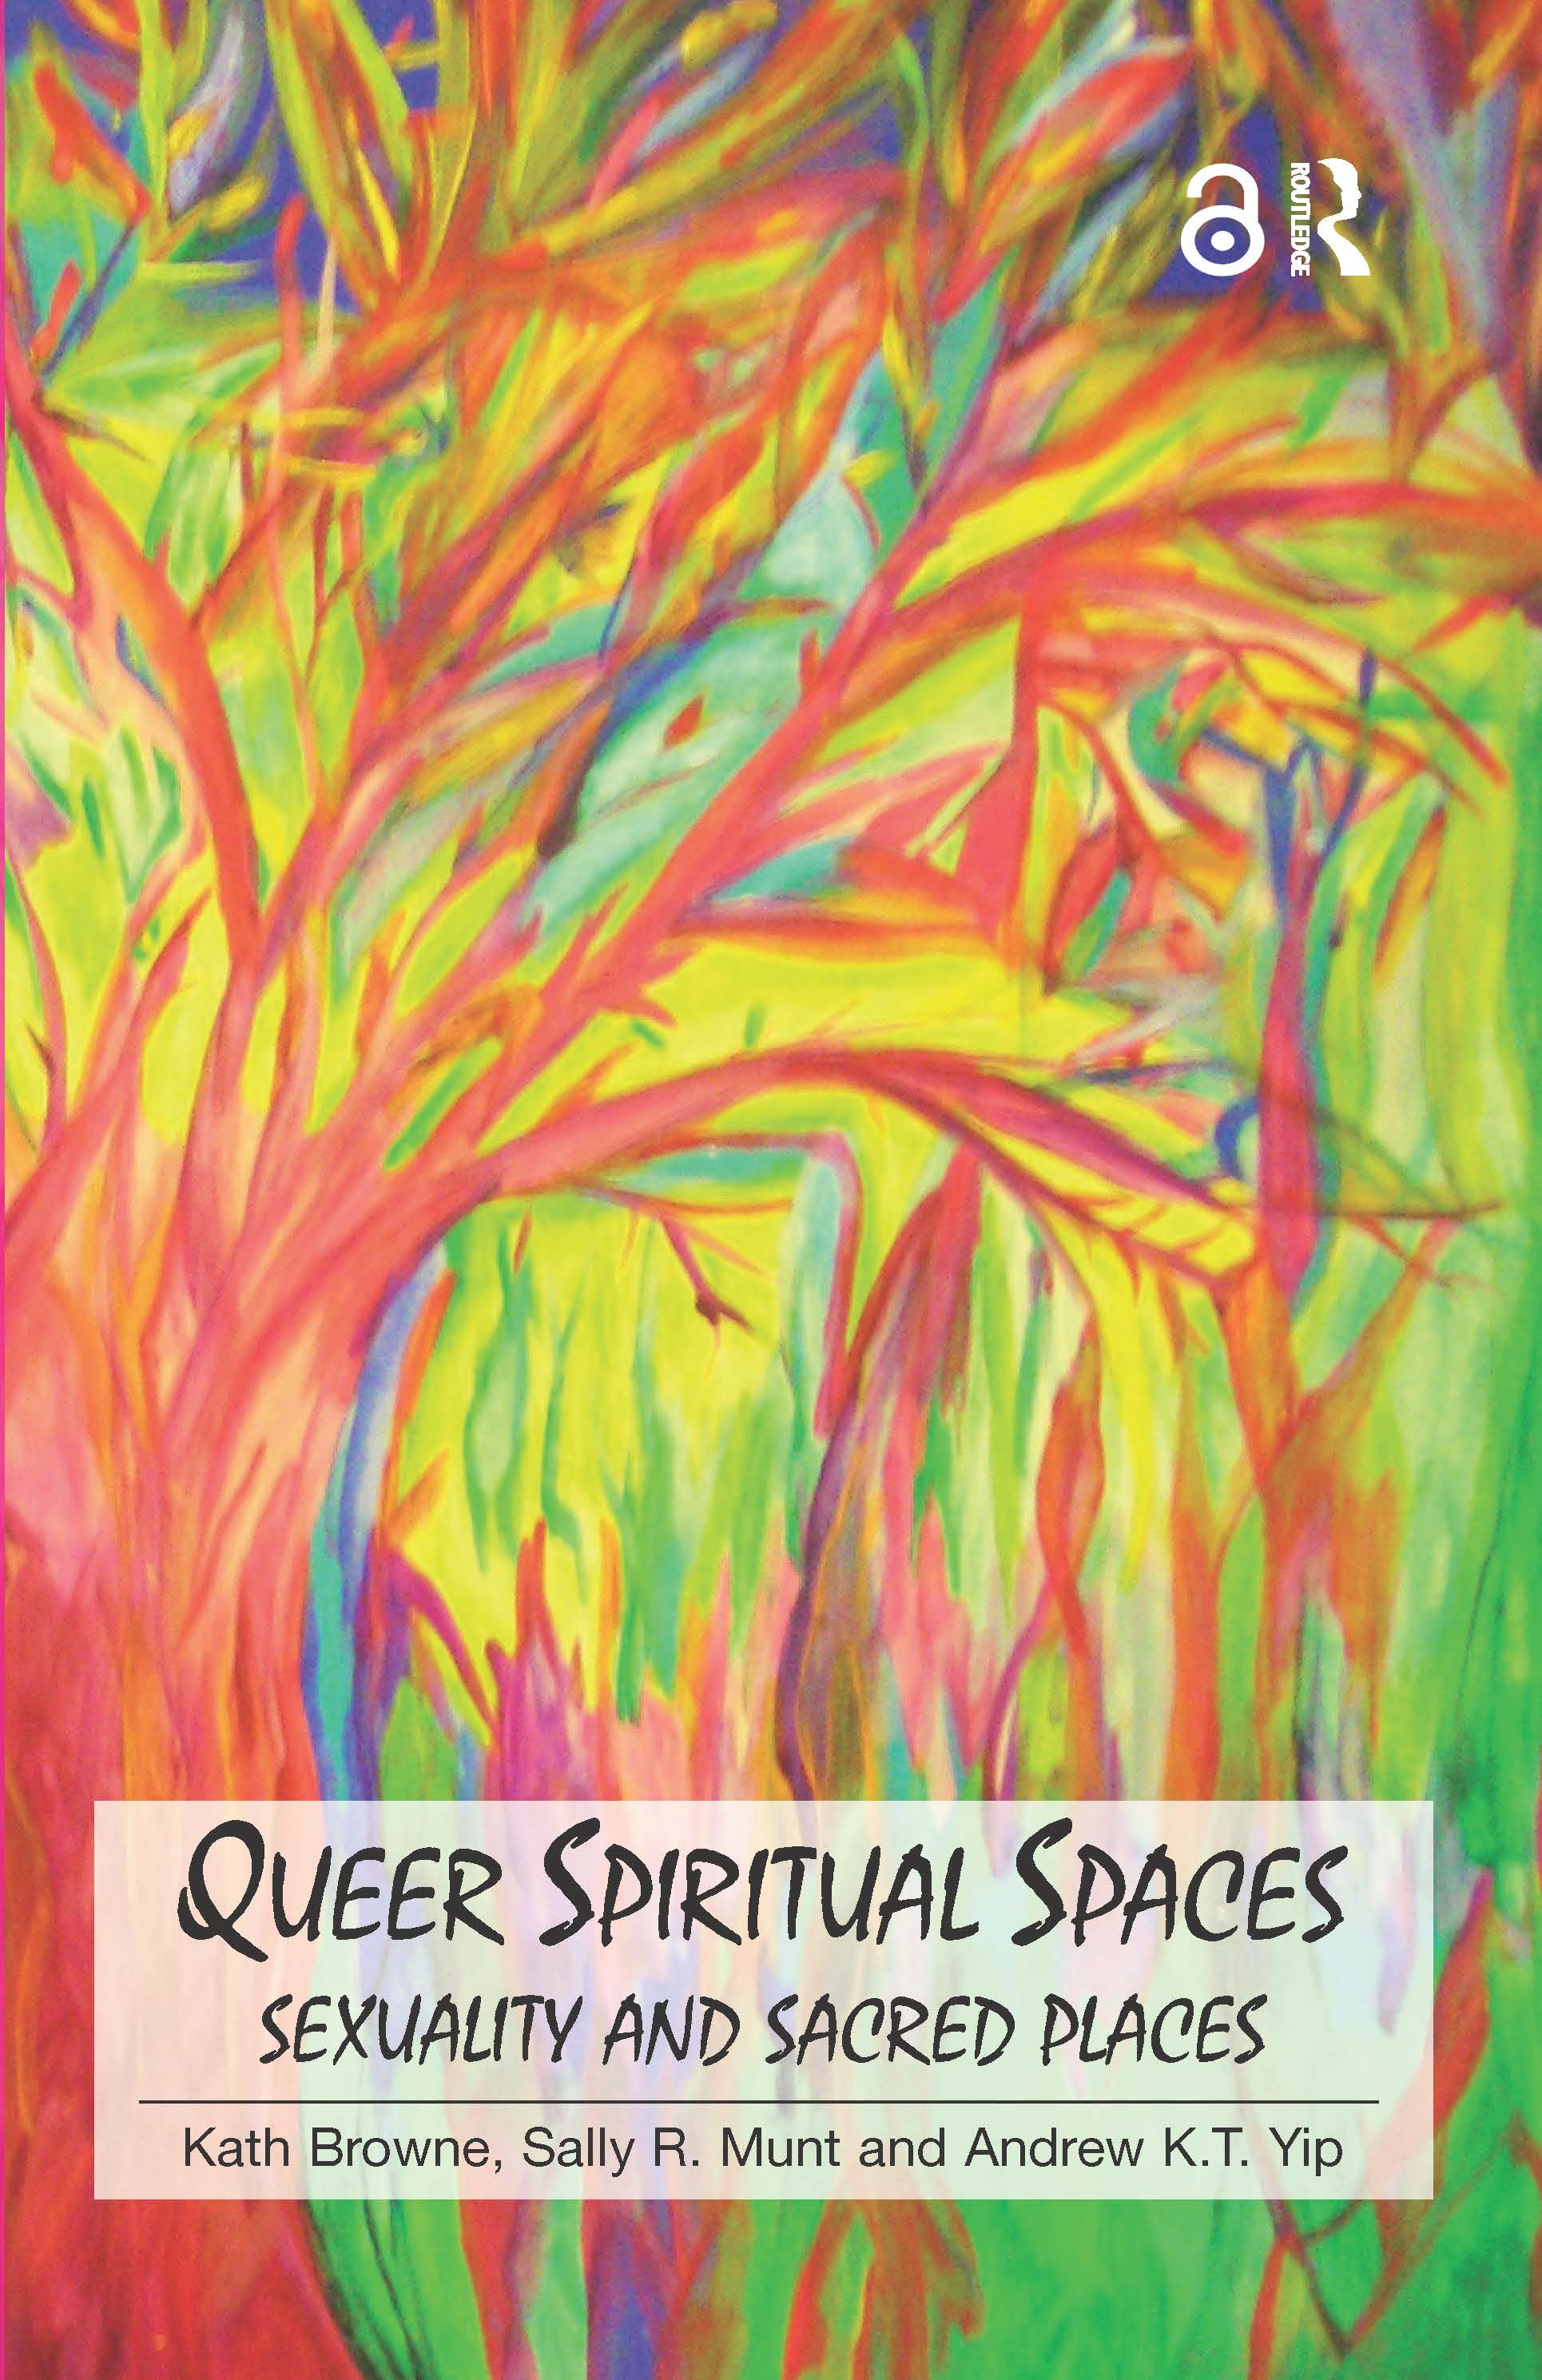 Queer Spiritual Spaces: Sexuality and Sacred Places book cover